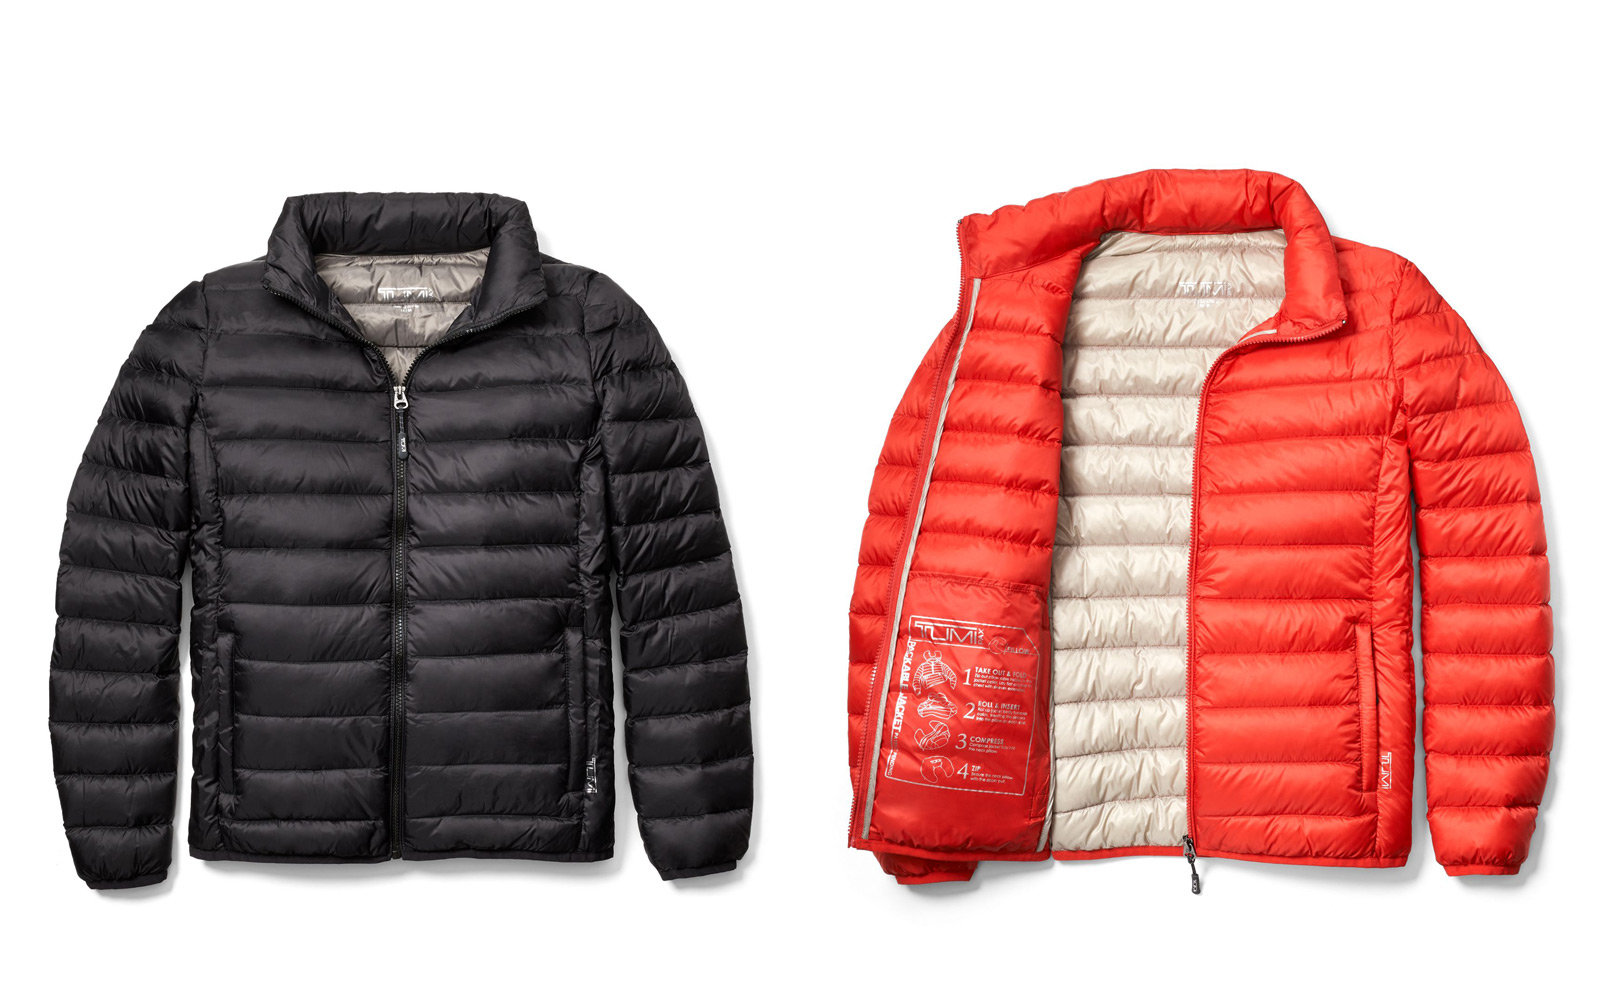 85f8e64dad4 The Best Packable Travel Jackets